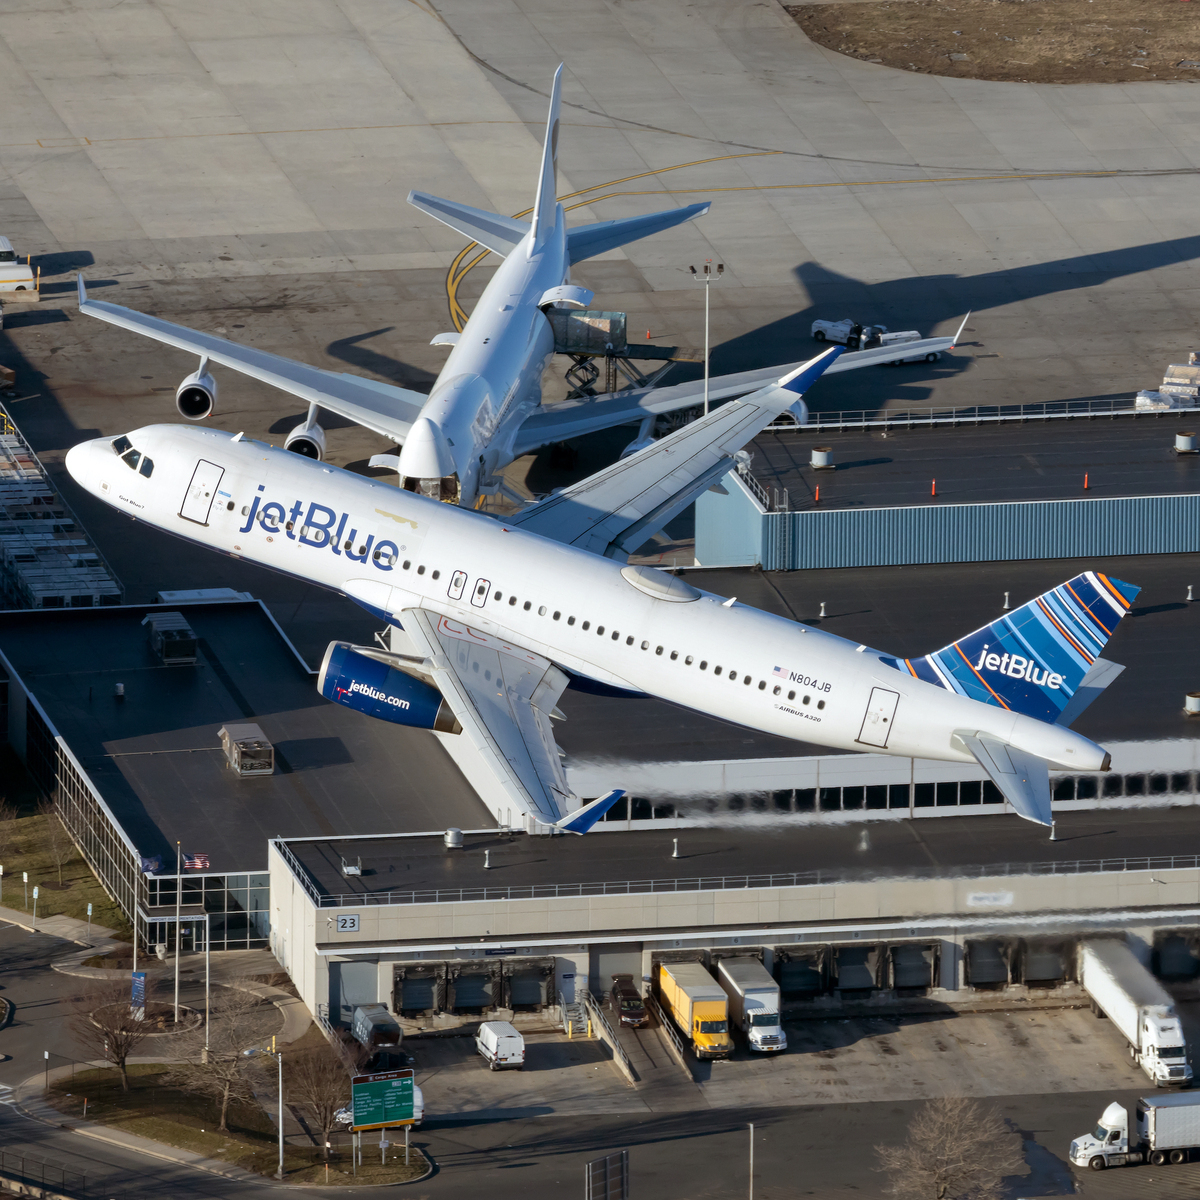 Would A Twin Aisle Configuration Work On The Airbus A320 Family?